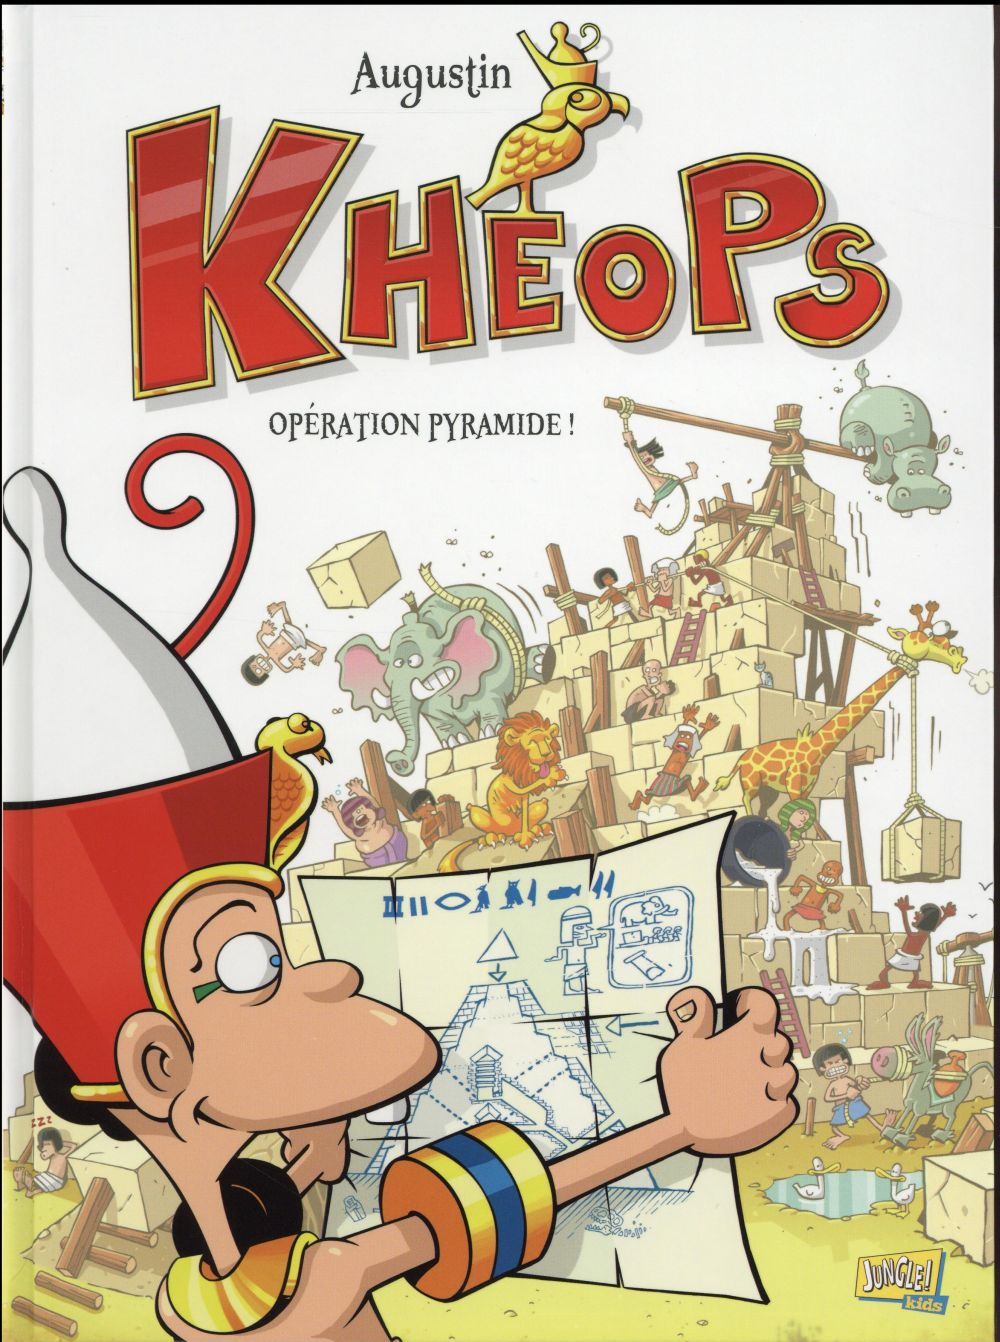 KHEOPS T1 OPERATION PYRAMIDE